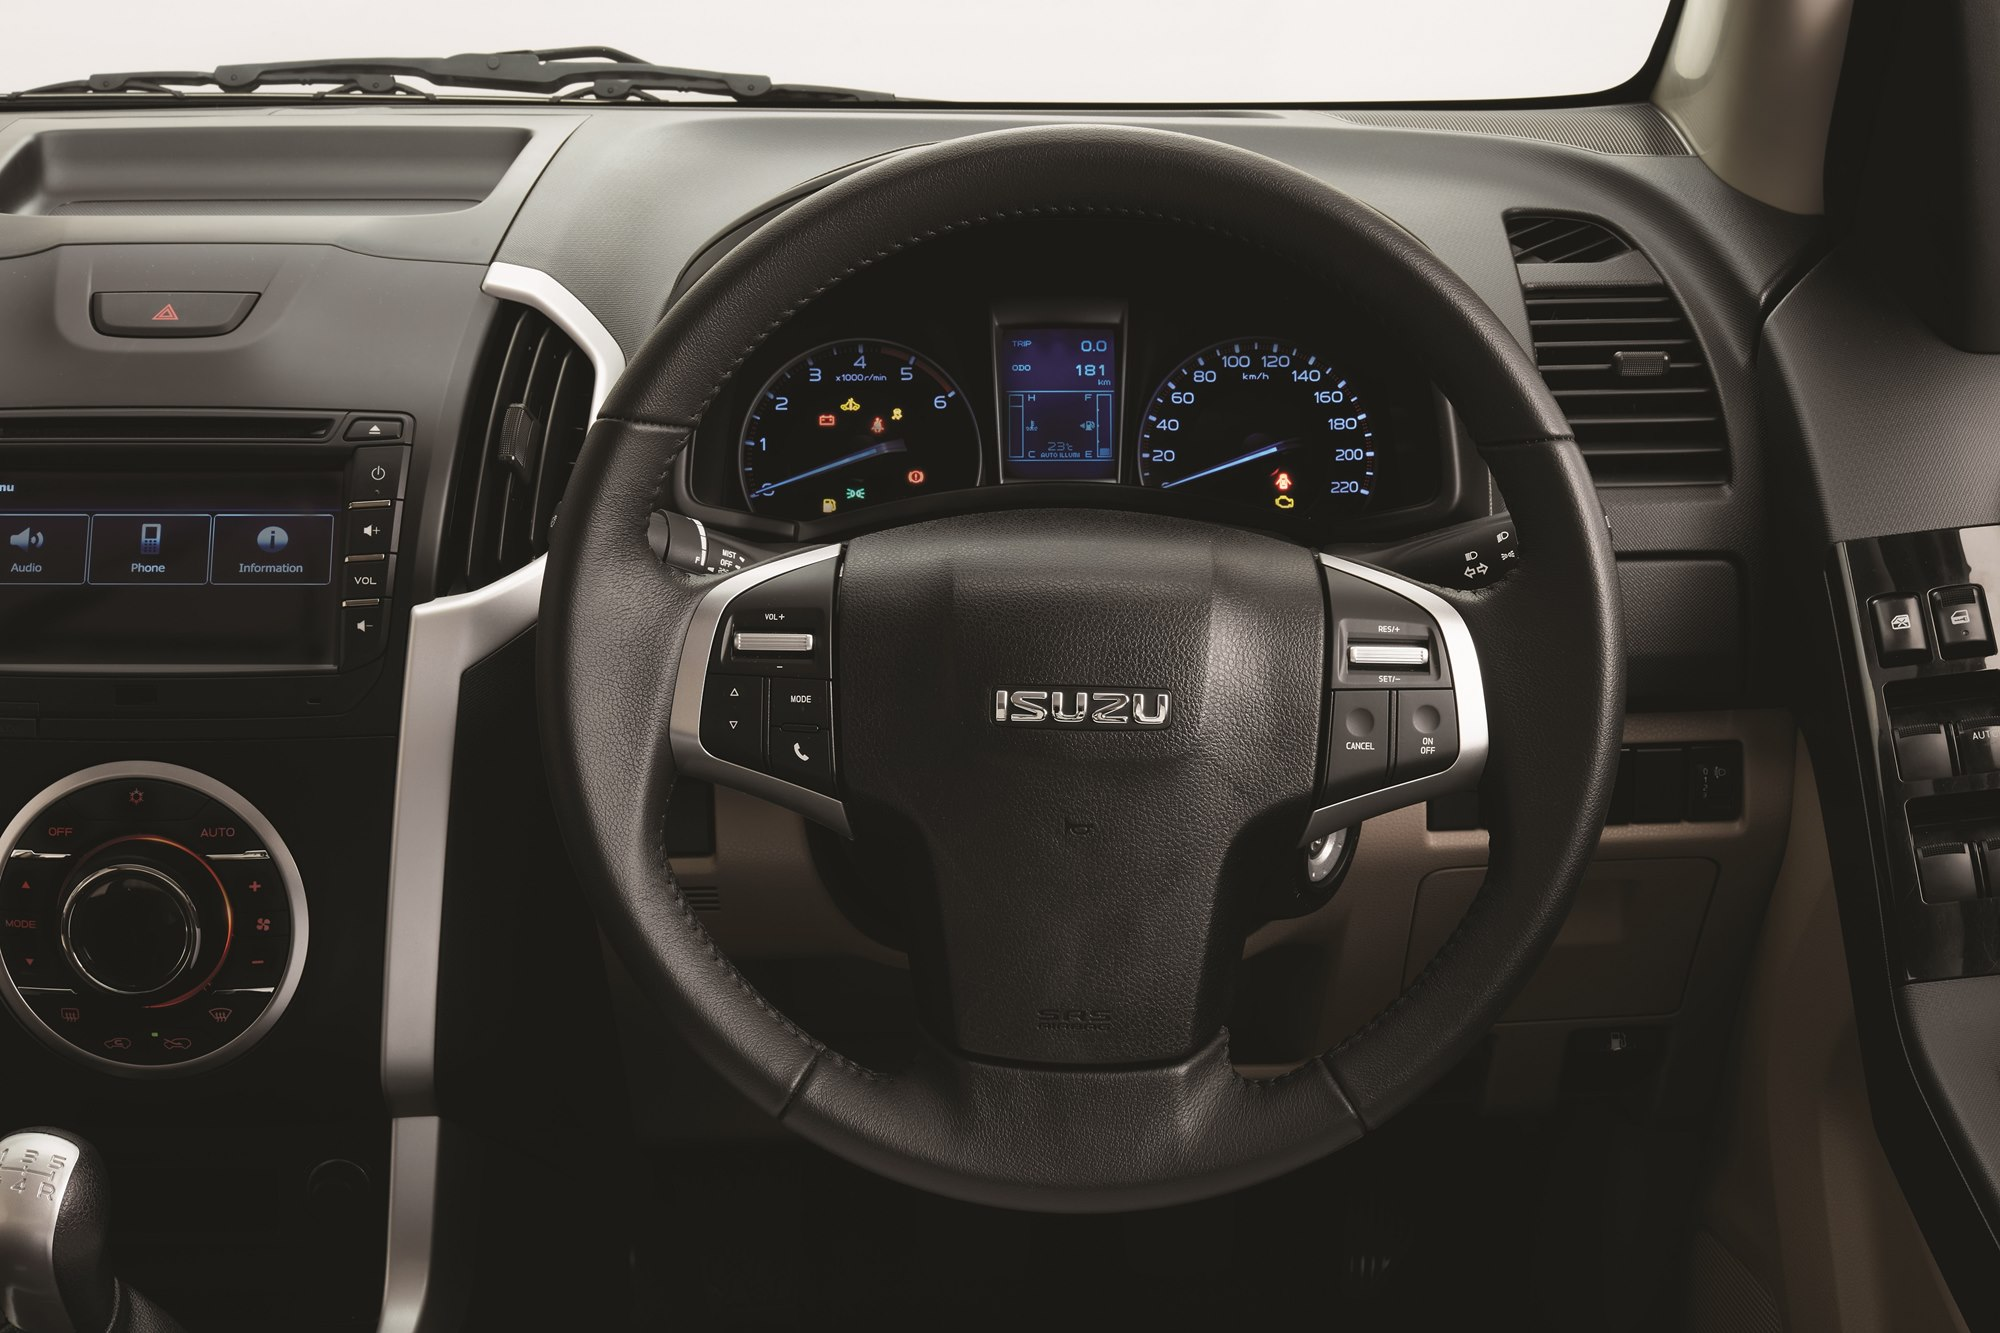 2018 ISUZU D-MAX V-Cross -Auto Cruise Control Steering wheel view